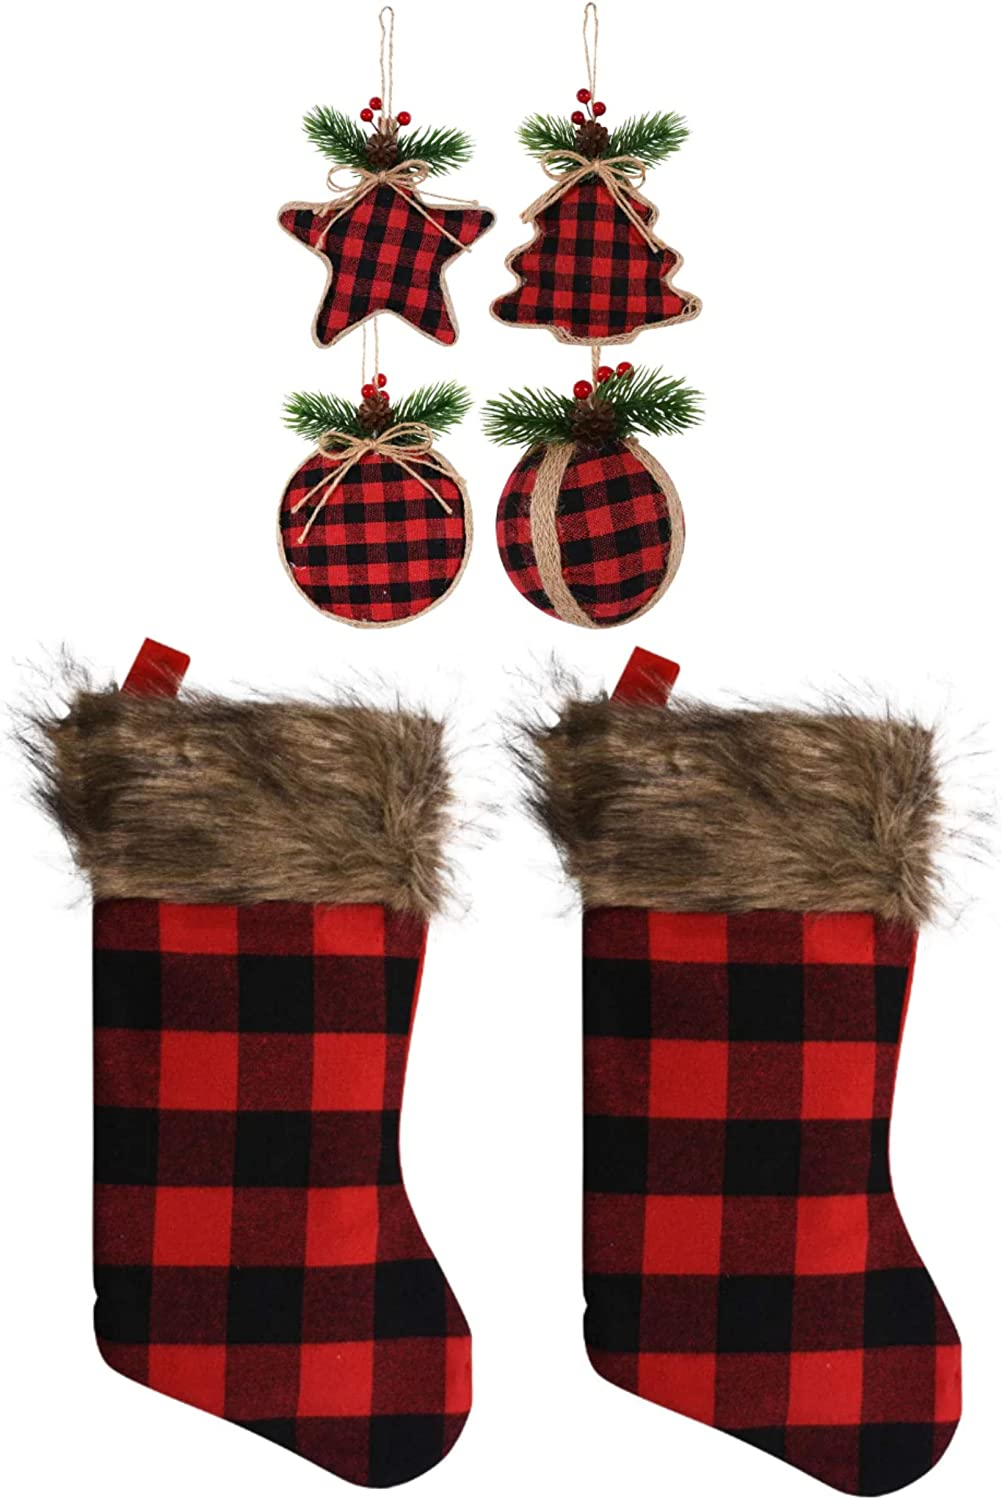 Farmhouse Decor Buffalo Plaid Christmas Stockings and Ornaments 6 Piece Set Red and Black Check Woodland Style (2 Stockings & 4 Ornaments)